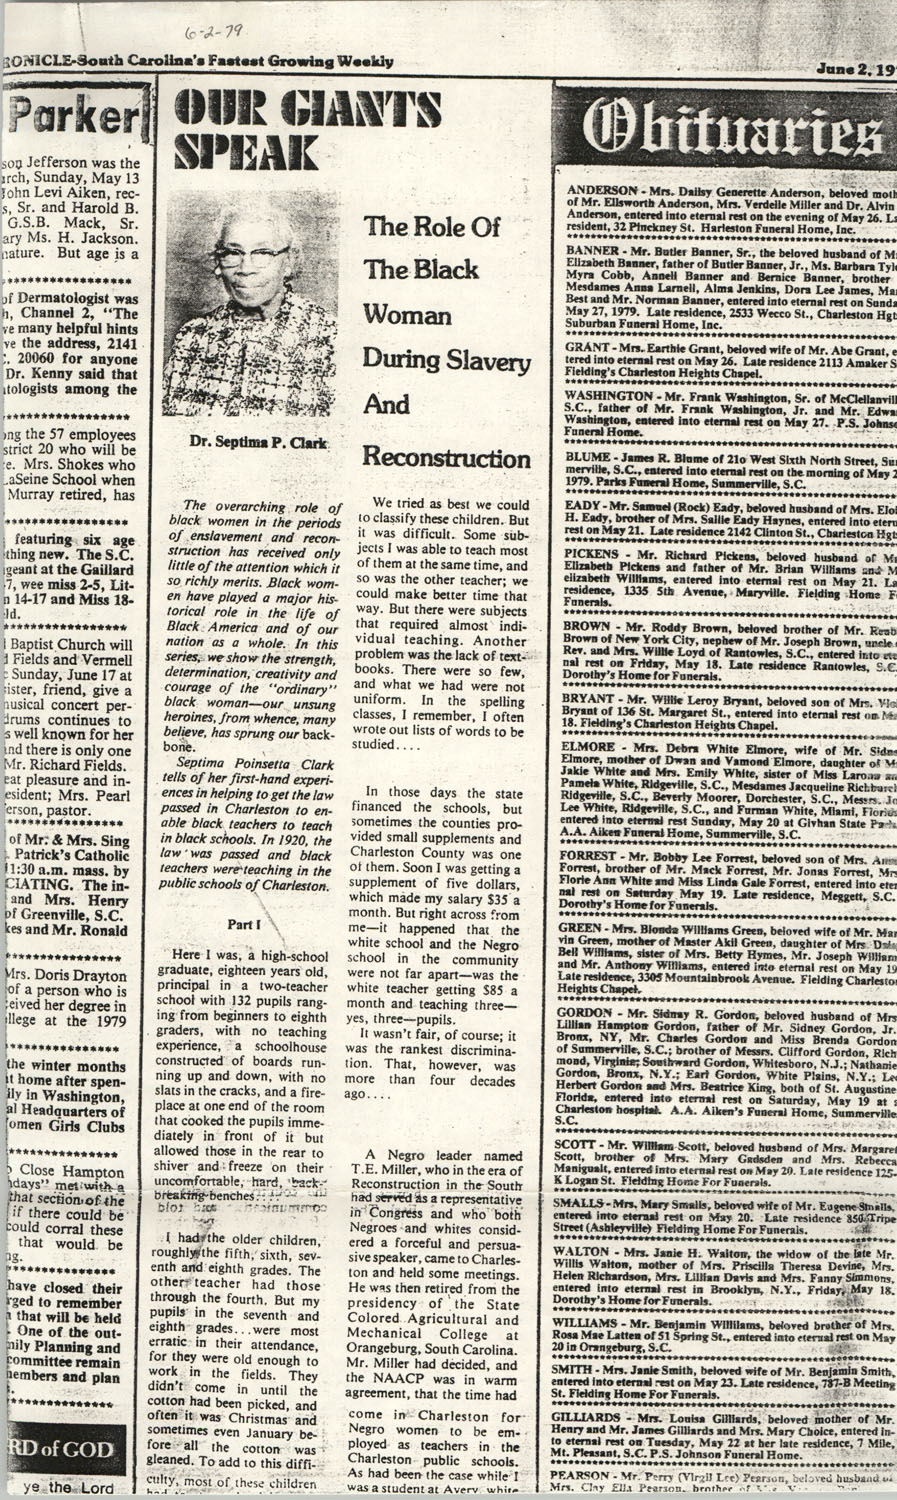 Newspaper Article, June 2, 1979